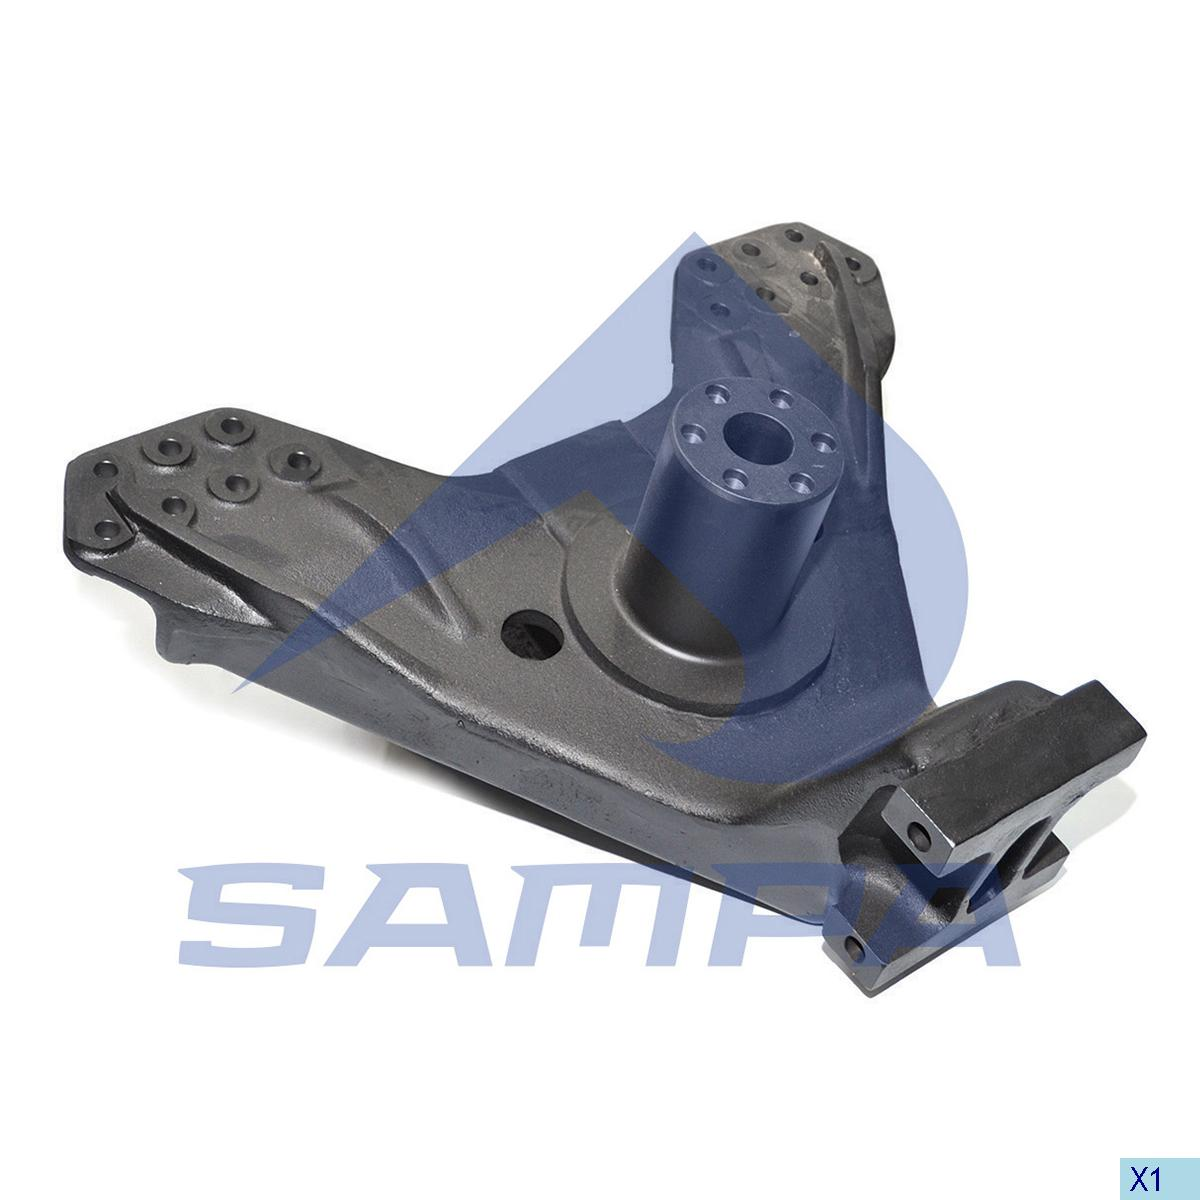 Bogie Bracket, Bogie Suspension, Man, Suspension